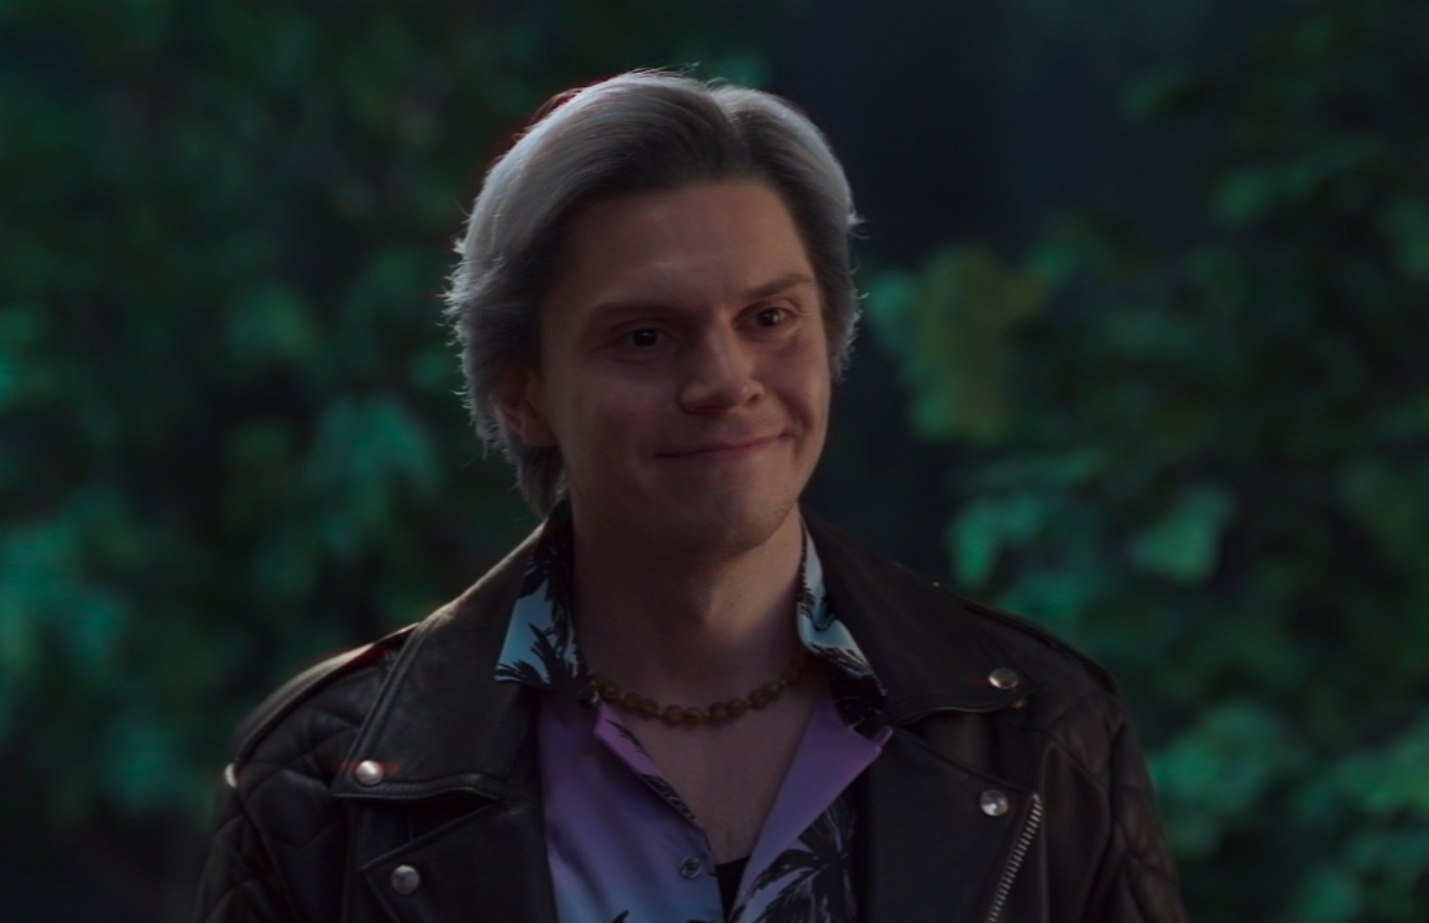 Evan Peters in WandaVision